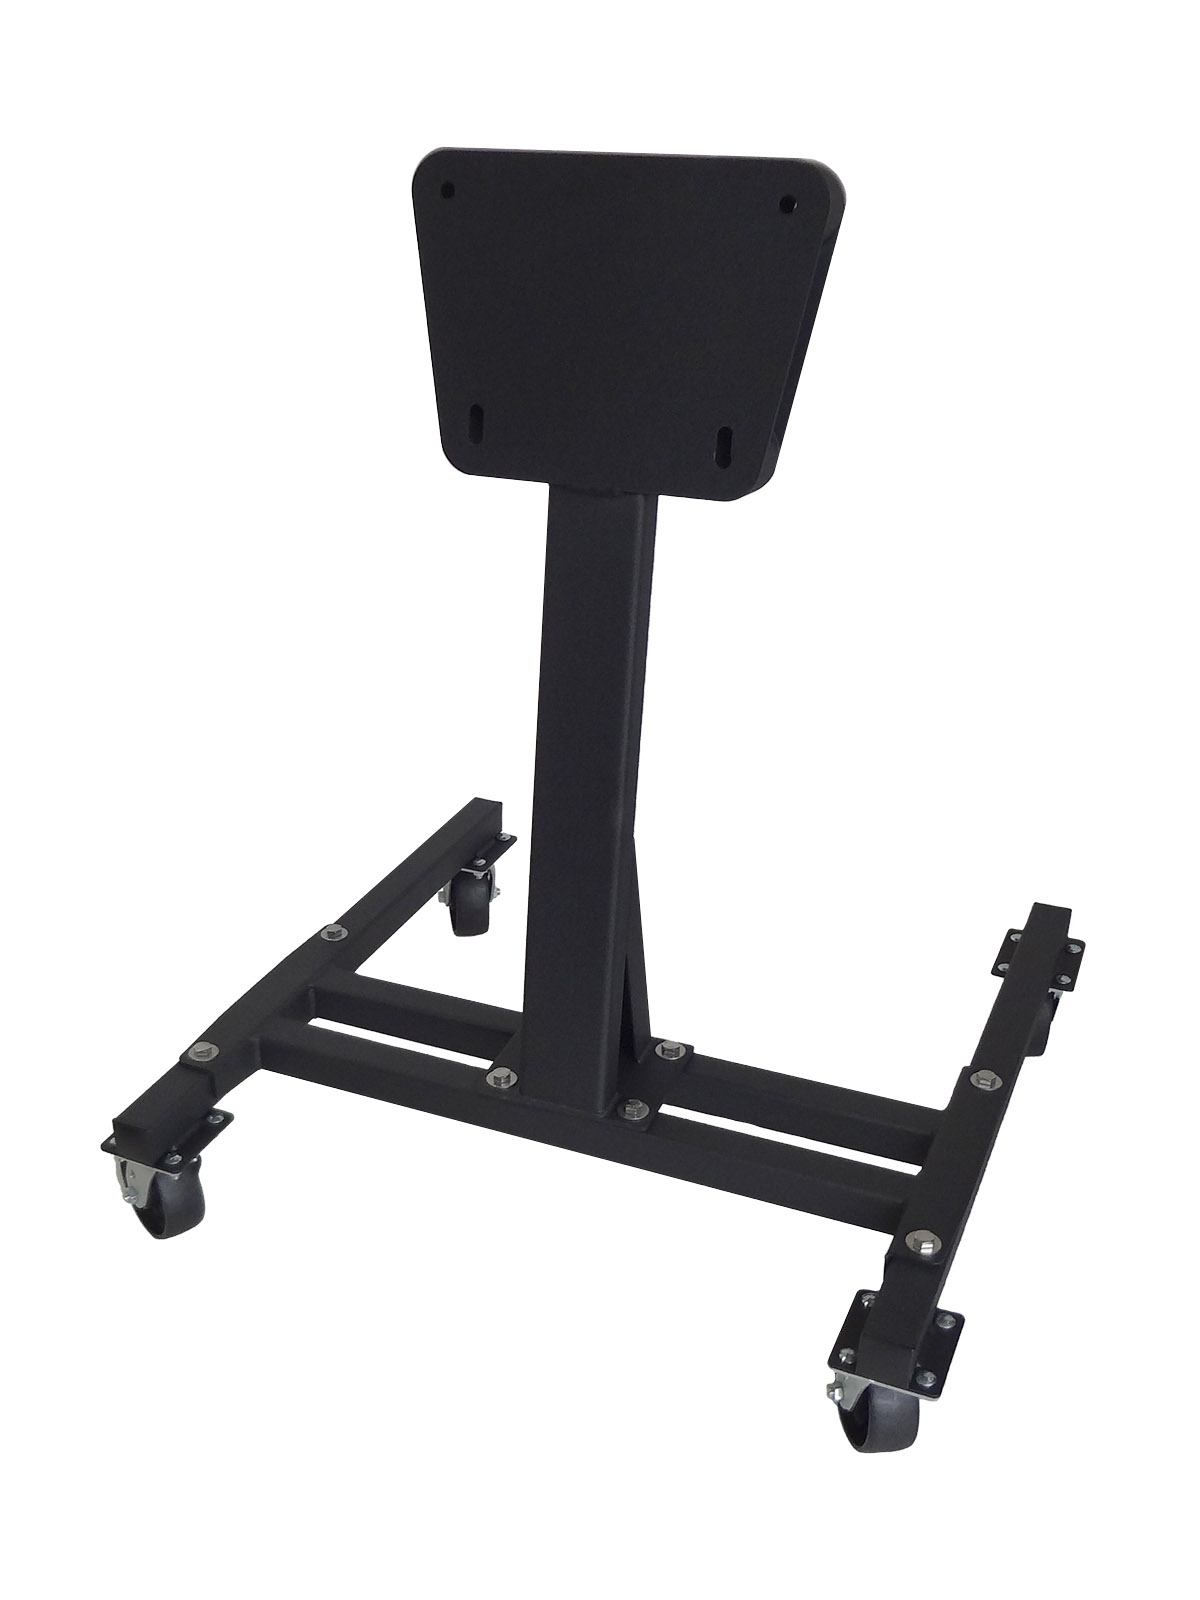 Large Outboard Display Stand